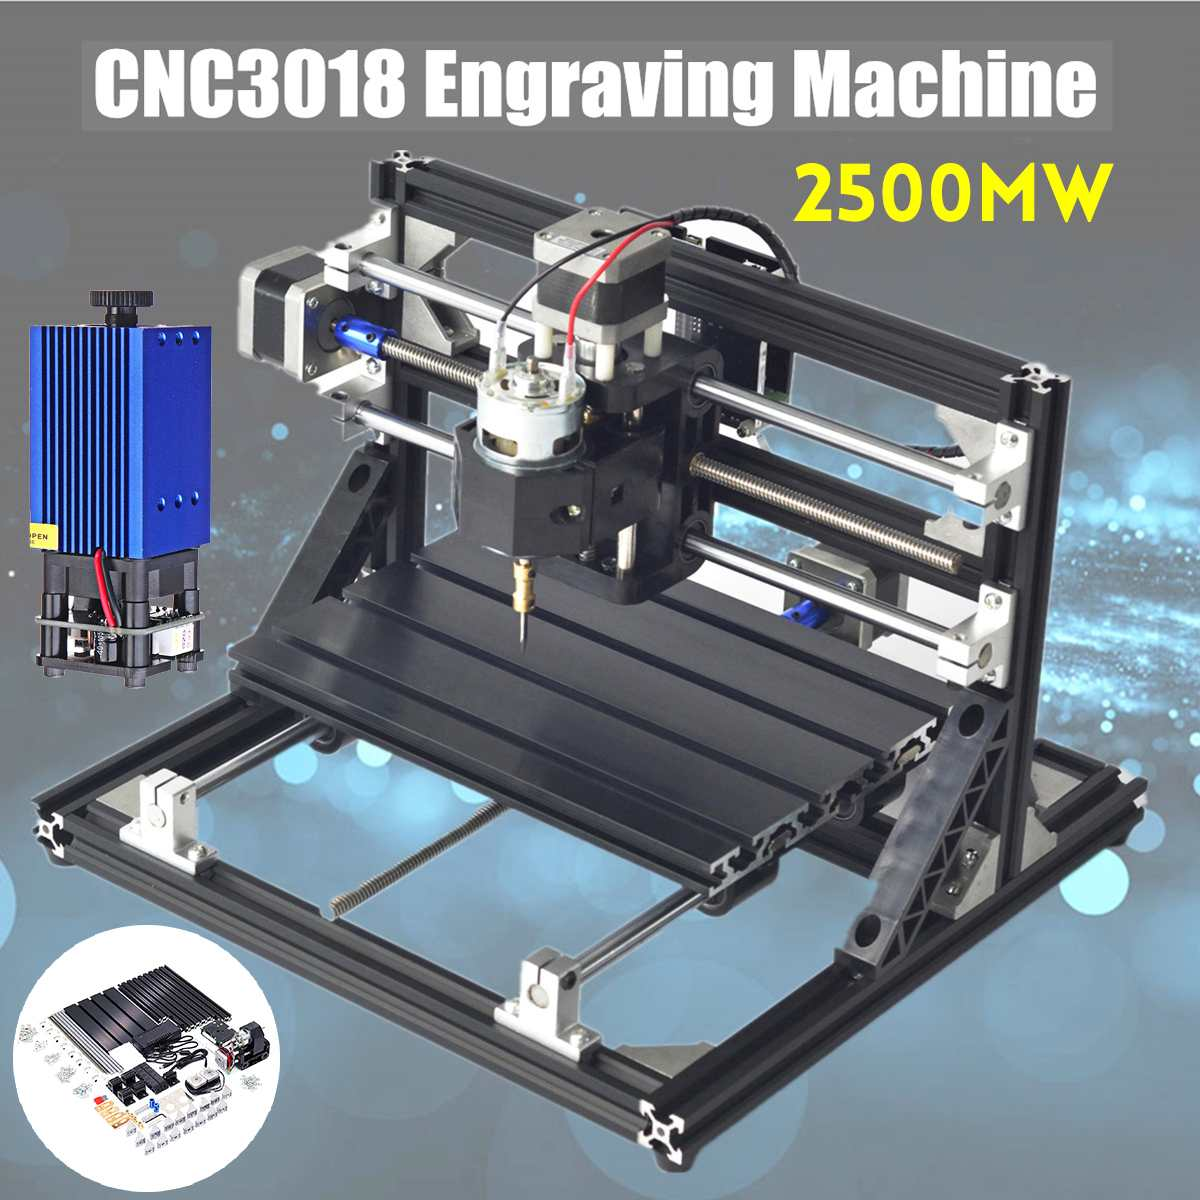 CNC3018 3 Axis Router Spindle Engraver Mini CNC Router DIY Wood Milling Engraving Laser Engraving Machine +2500mW Laser Head